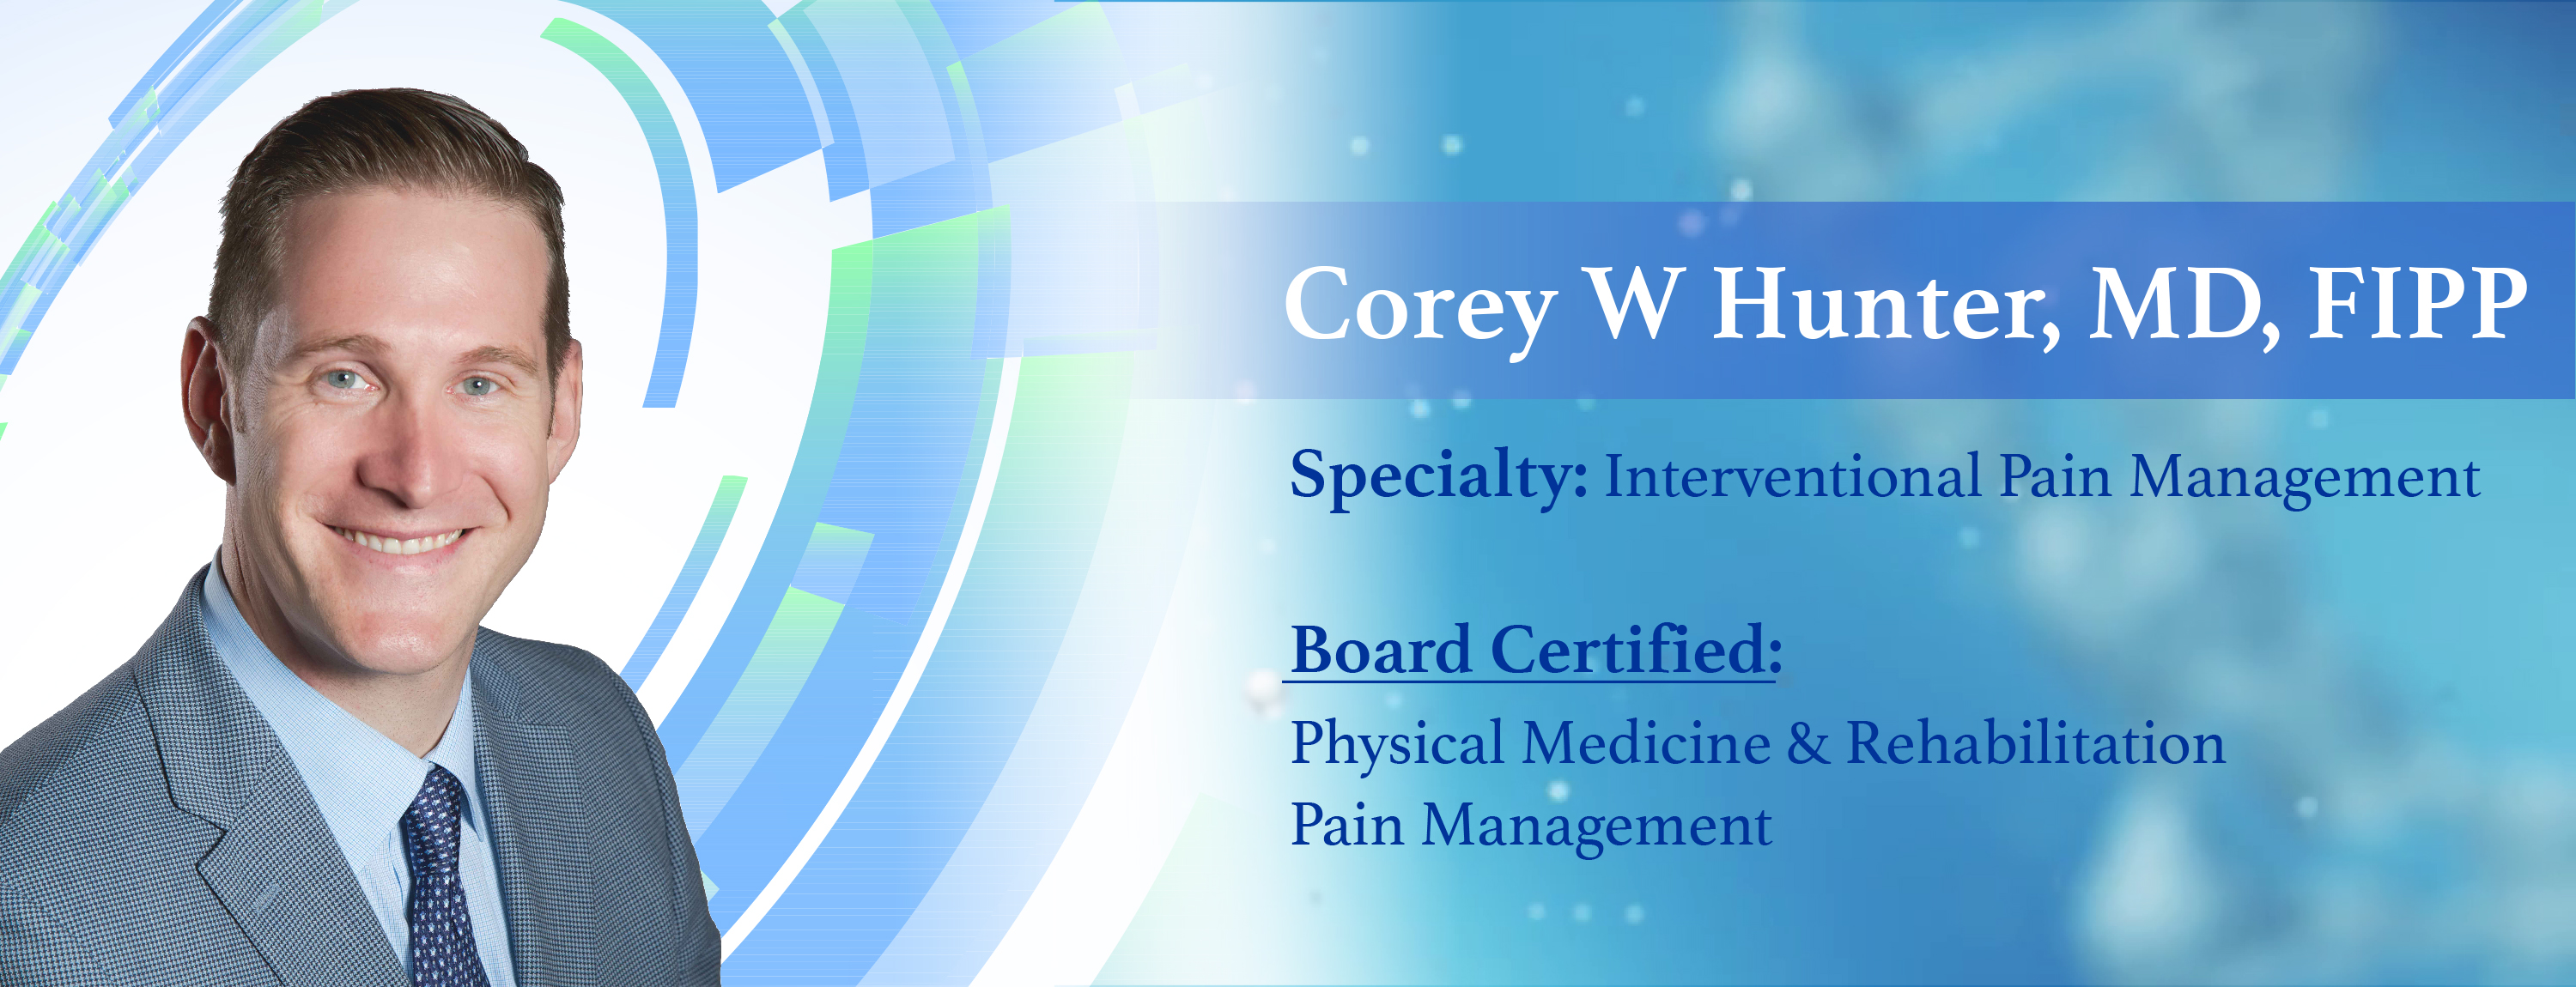 Corey Hunter, MD